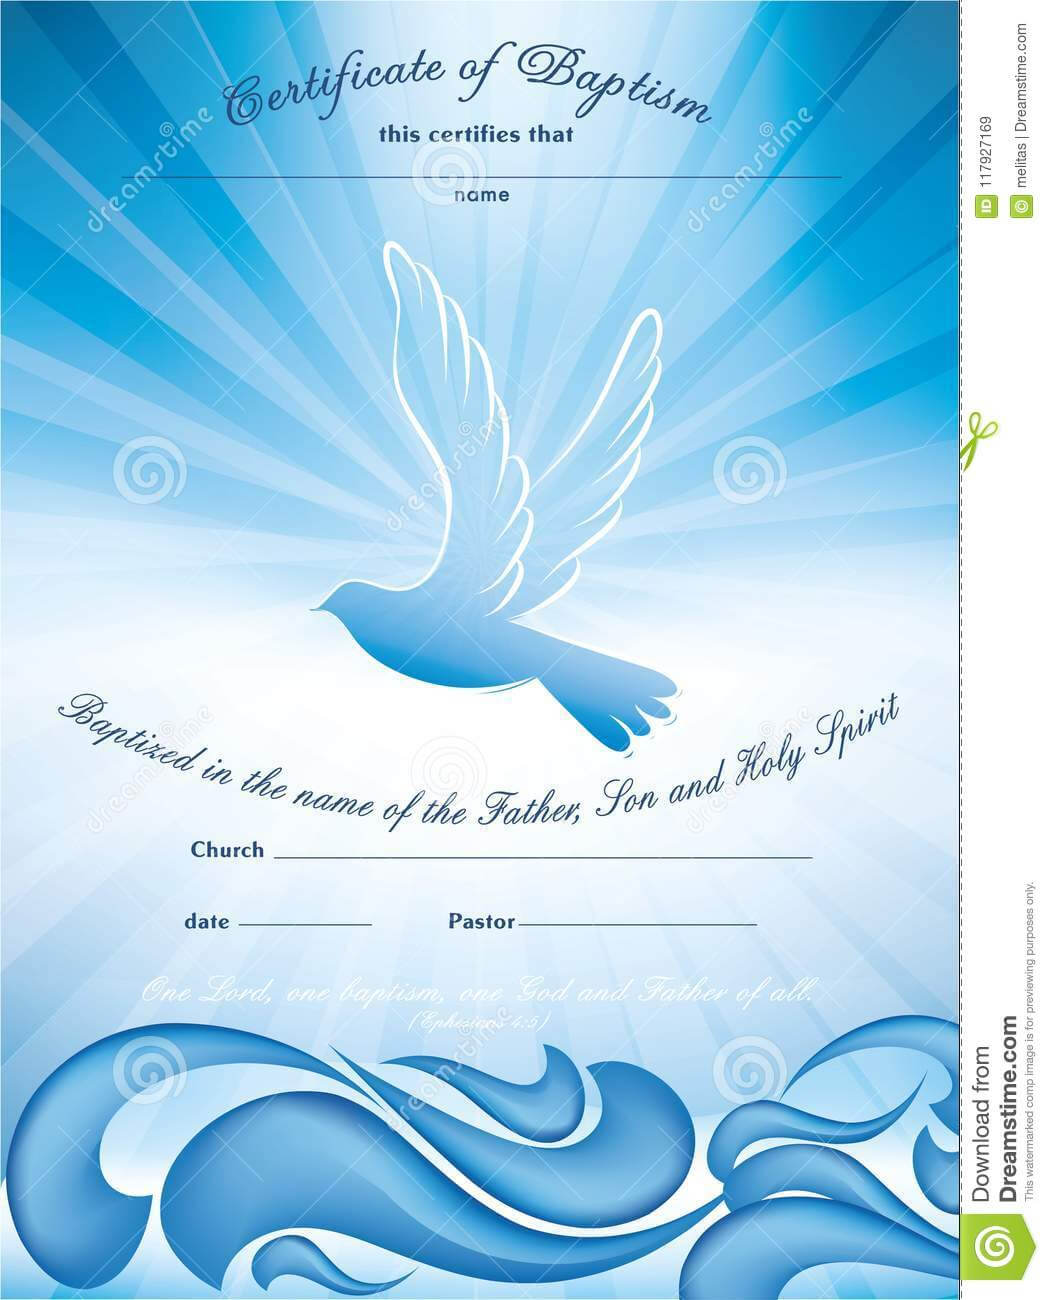 Certificate Baptism Template. With Waves Of Water And Dove regarding Christian Baptism Certificate Template